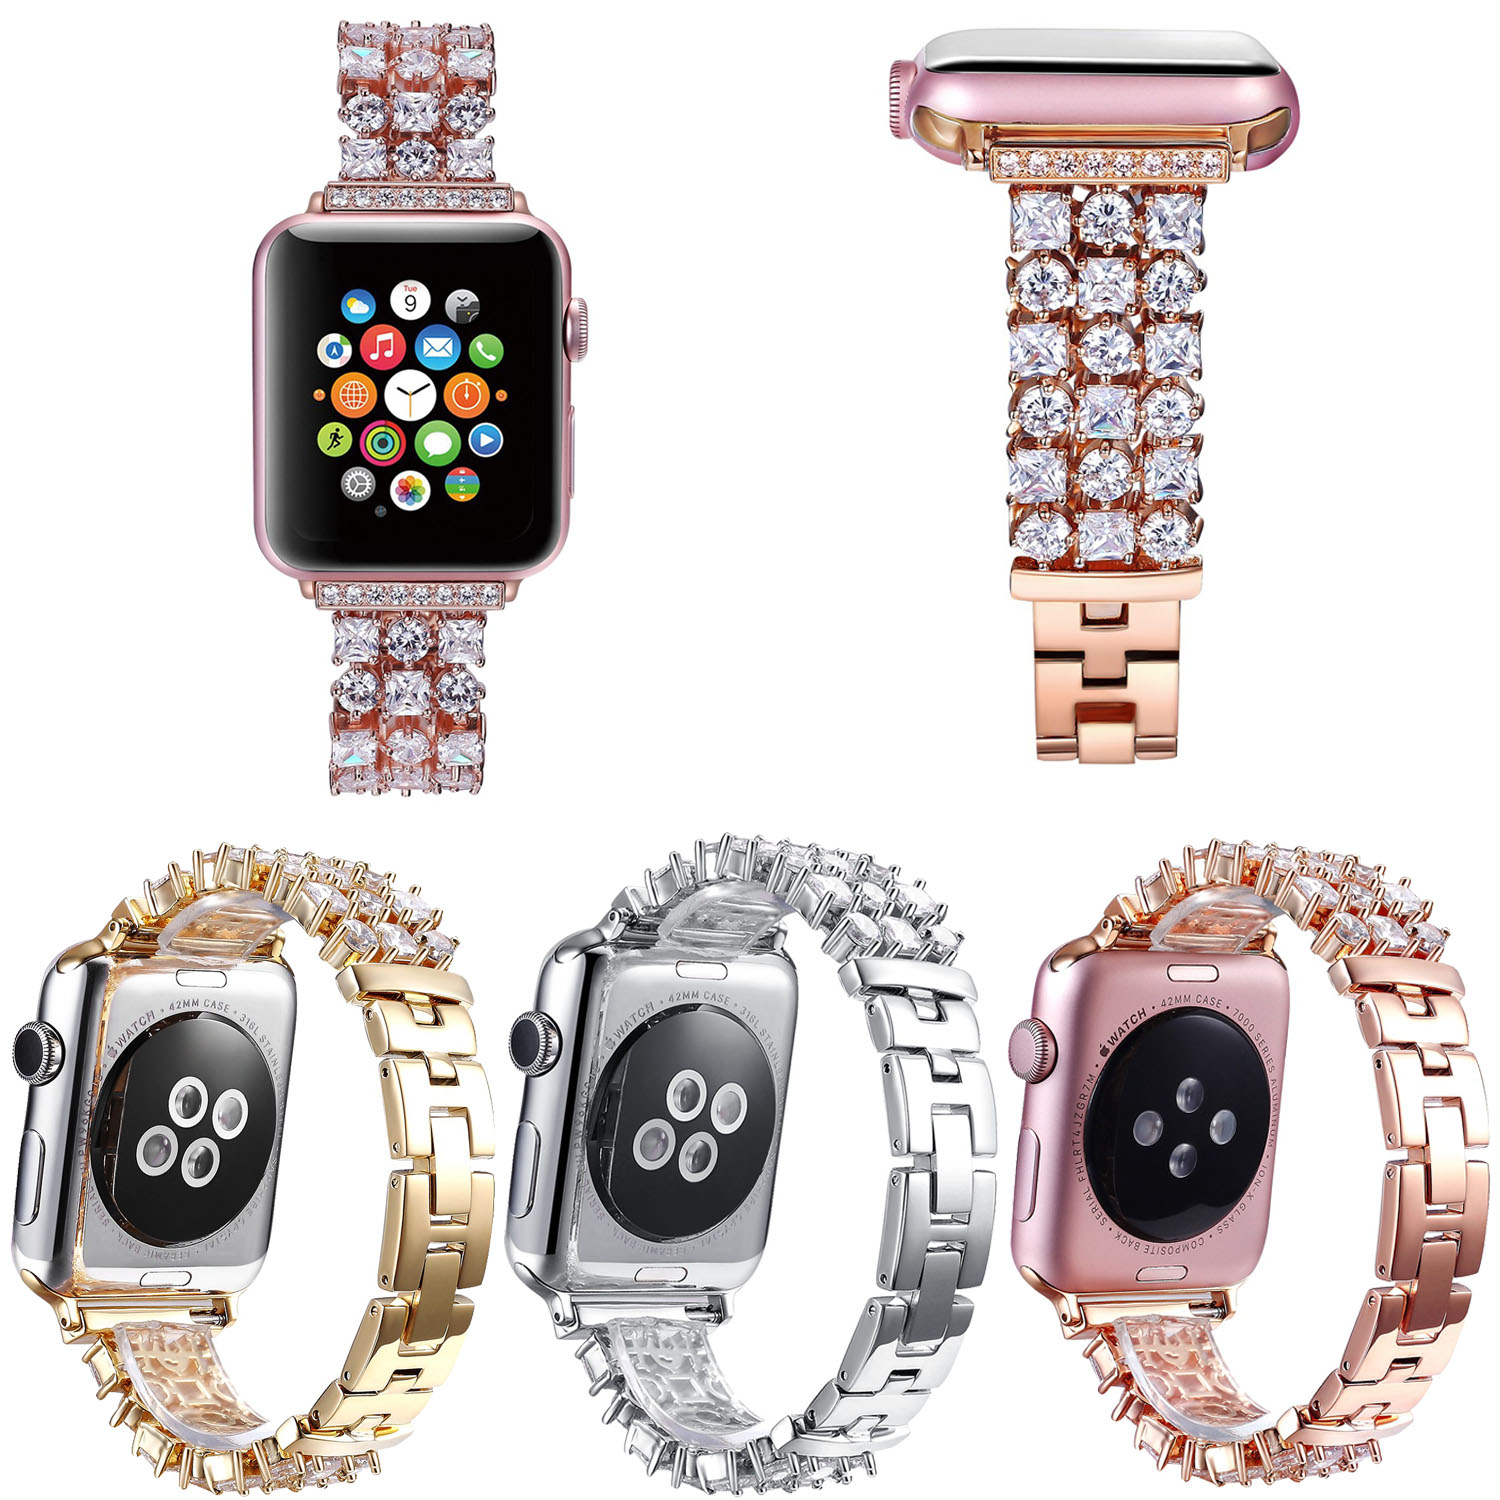 Bling Rhinestone Strap for Apple Watch Band Series 4 3 2 1 Stainless Steel Link Bracelet